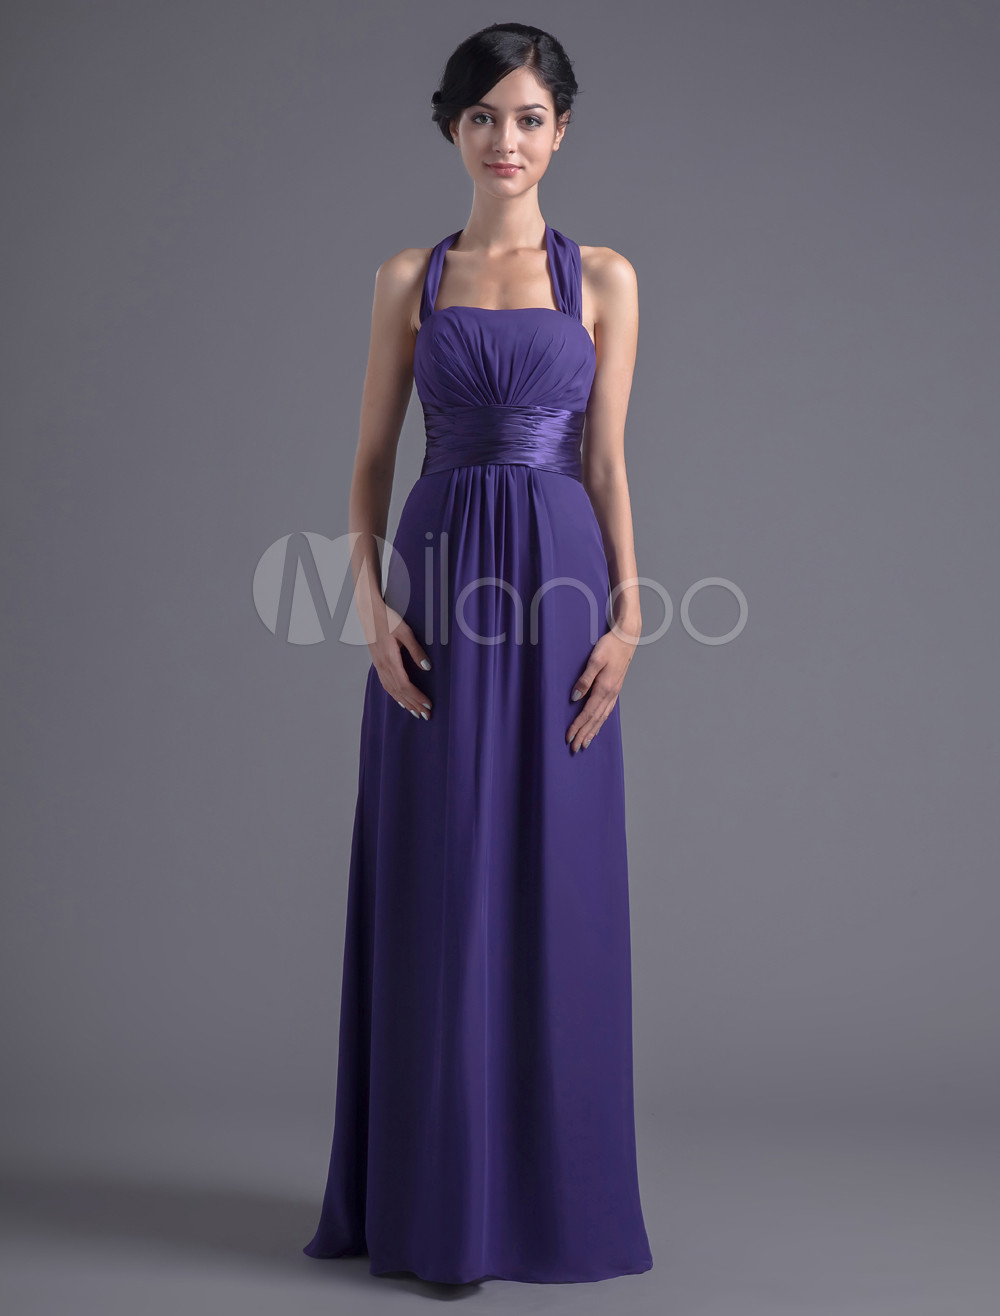 Empire Waist Deep Purple Chiffon Halter Bridesmaid Dress For Wedding